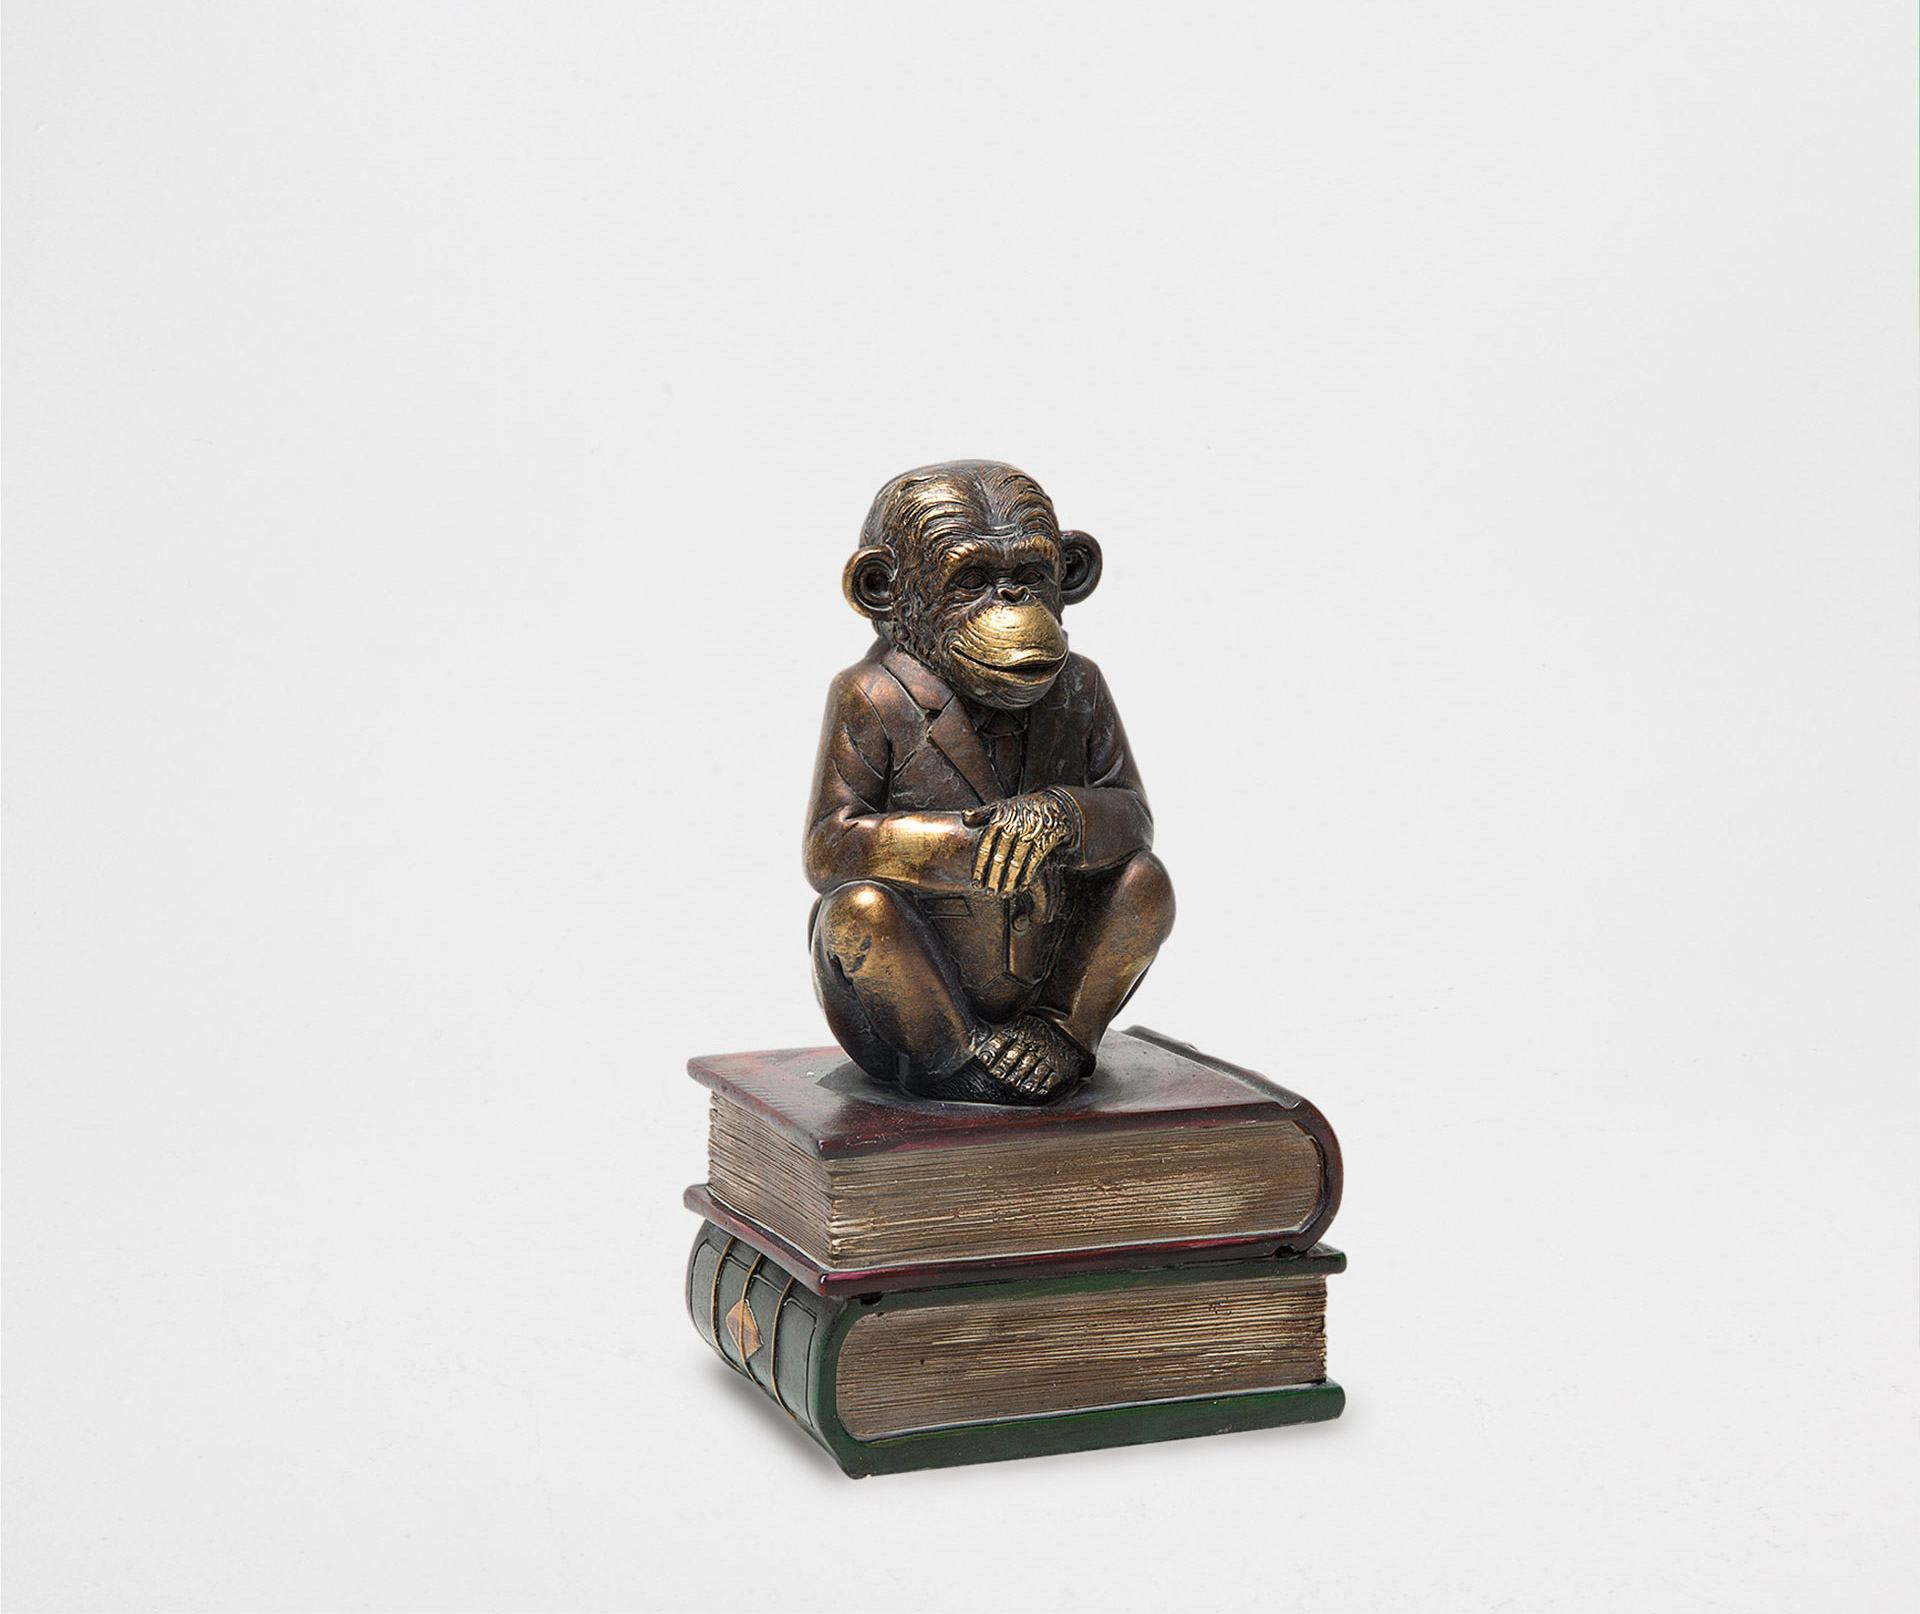 DECORATIVE-MONKEY-FIGURE